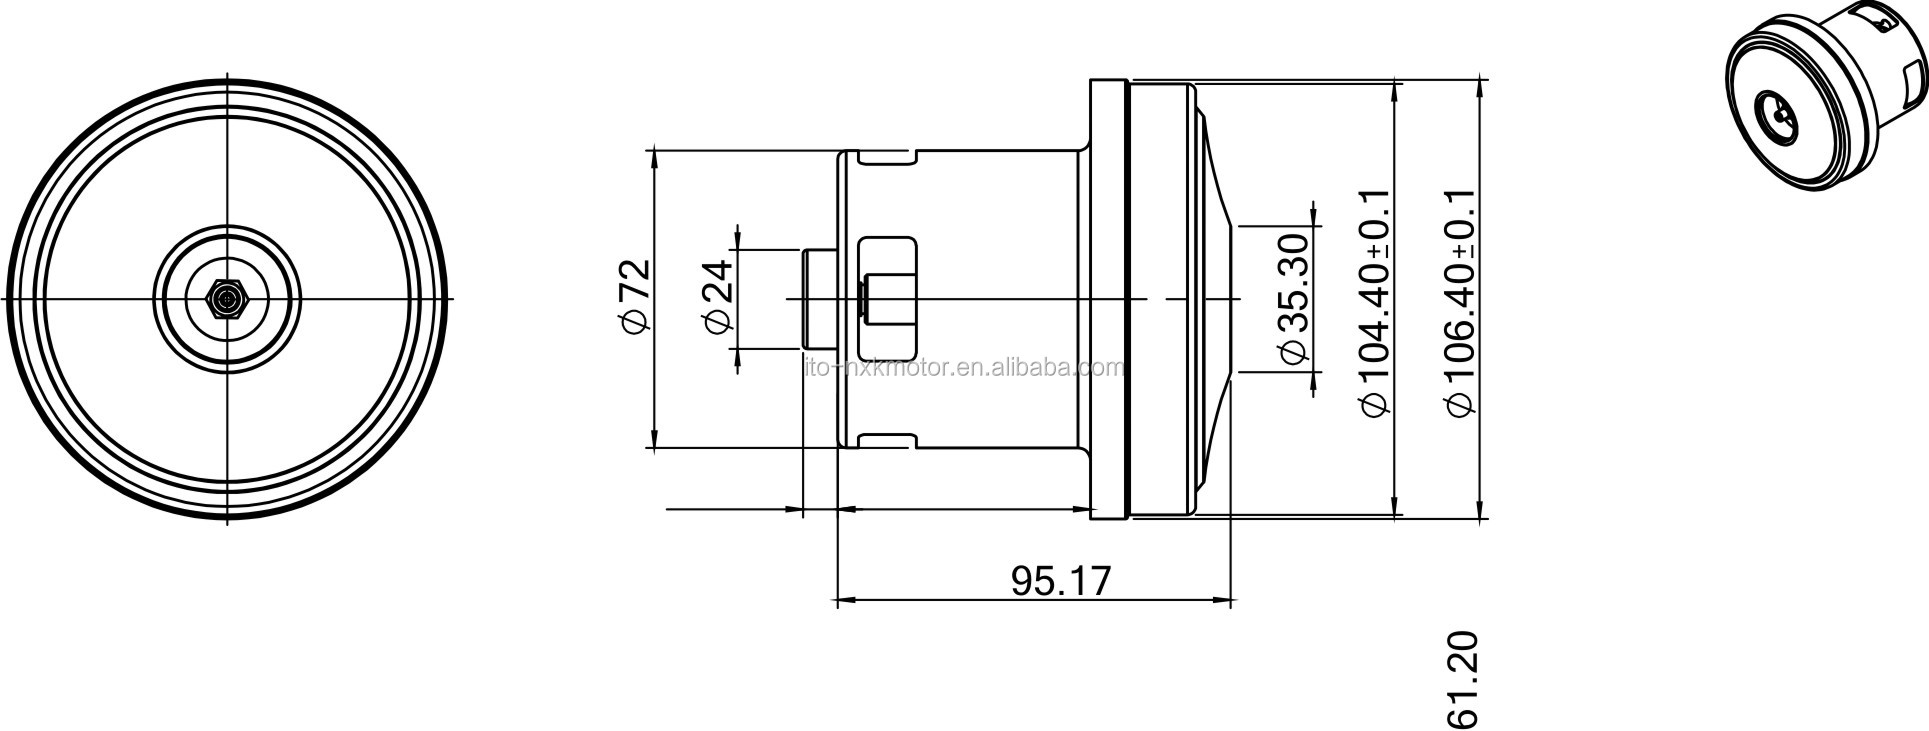 72mm 82mm Ac Dc Wet And Dry Brushless Motor For Vacuum Cleaner View Brushless Vacuum Cleaner